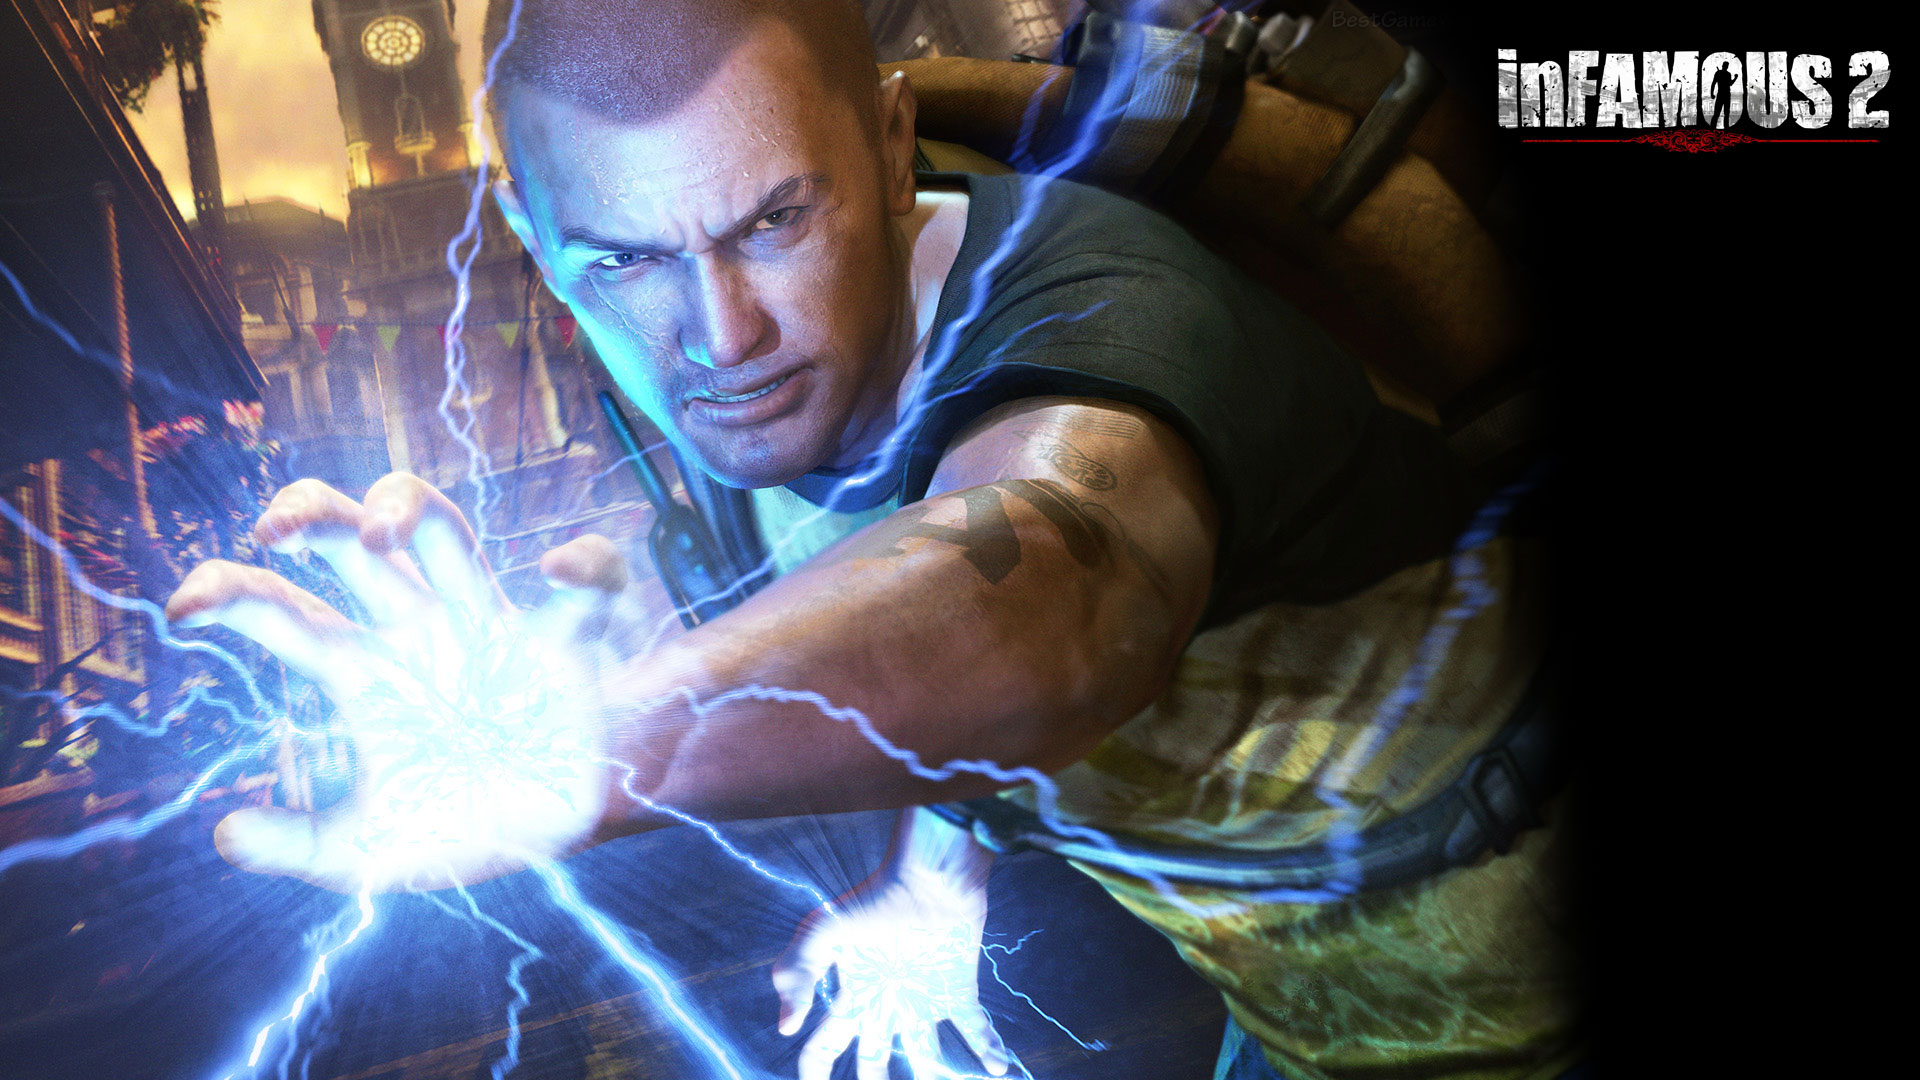 Awesome Infamous 2 Wallpaper